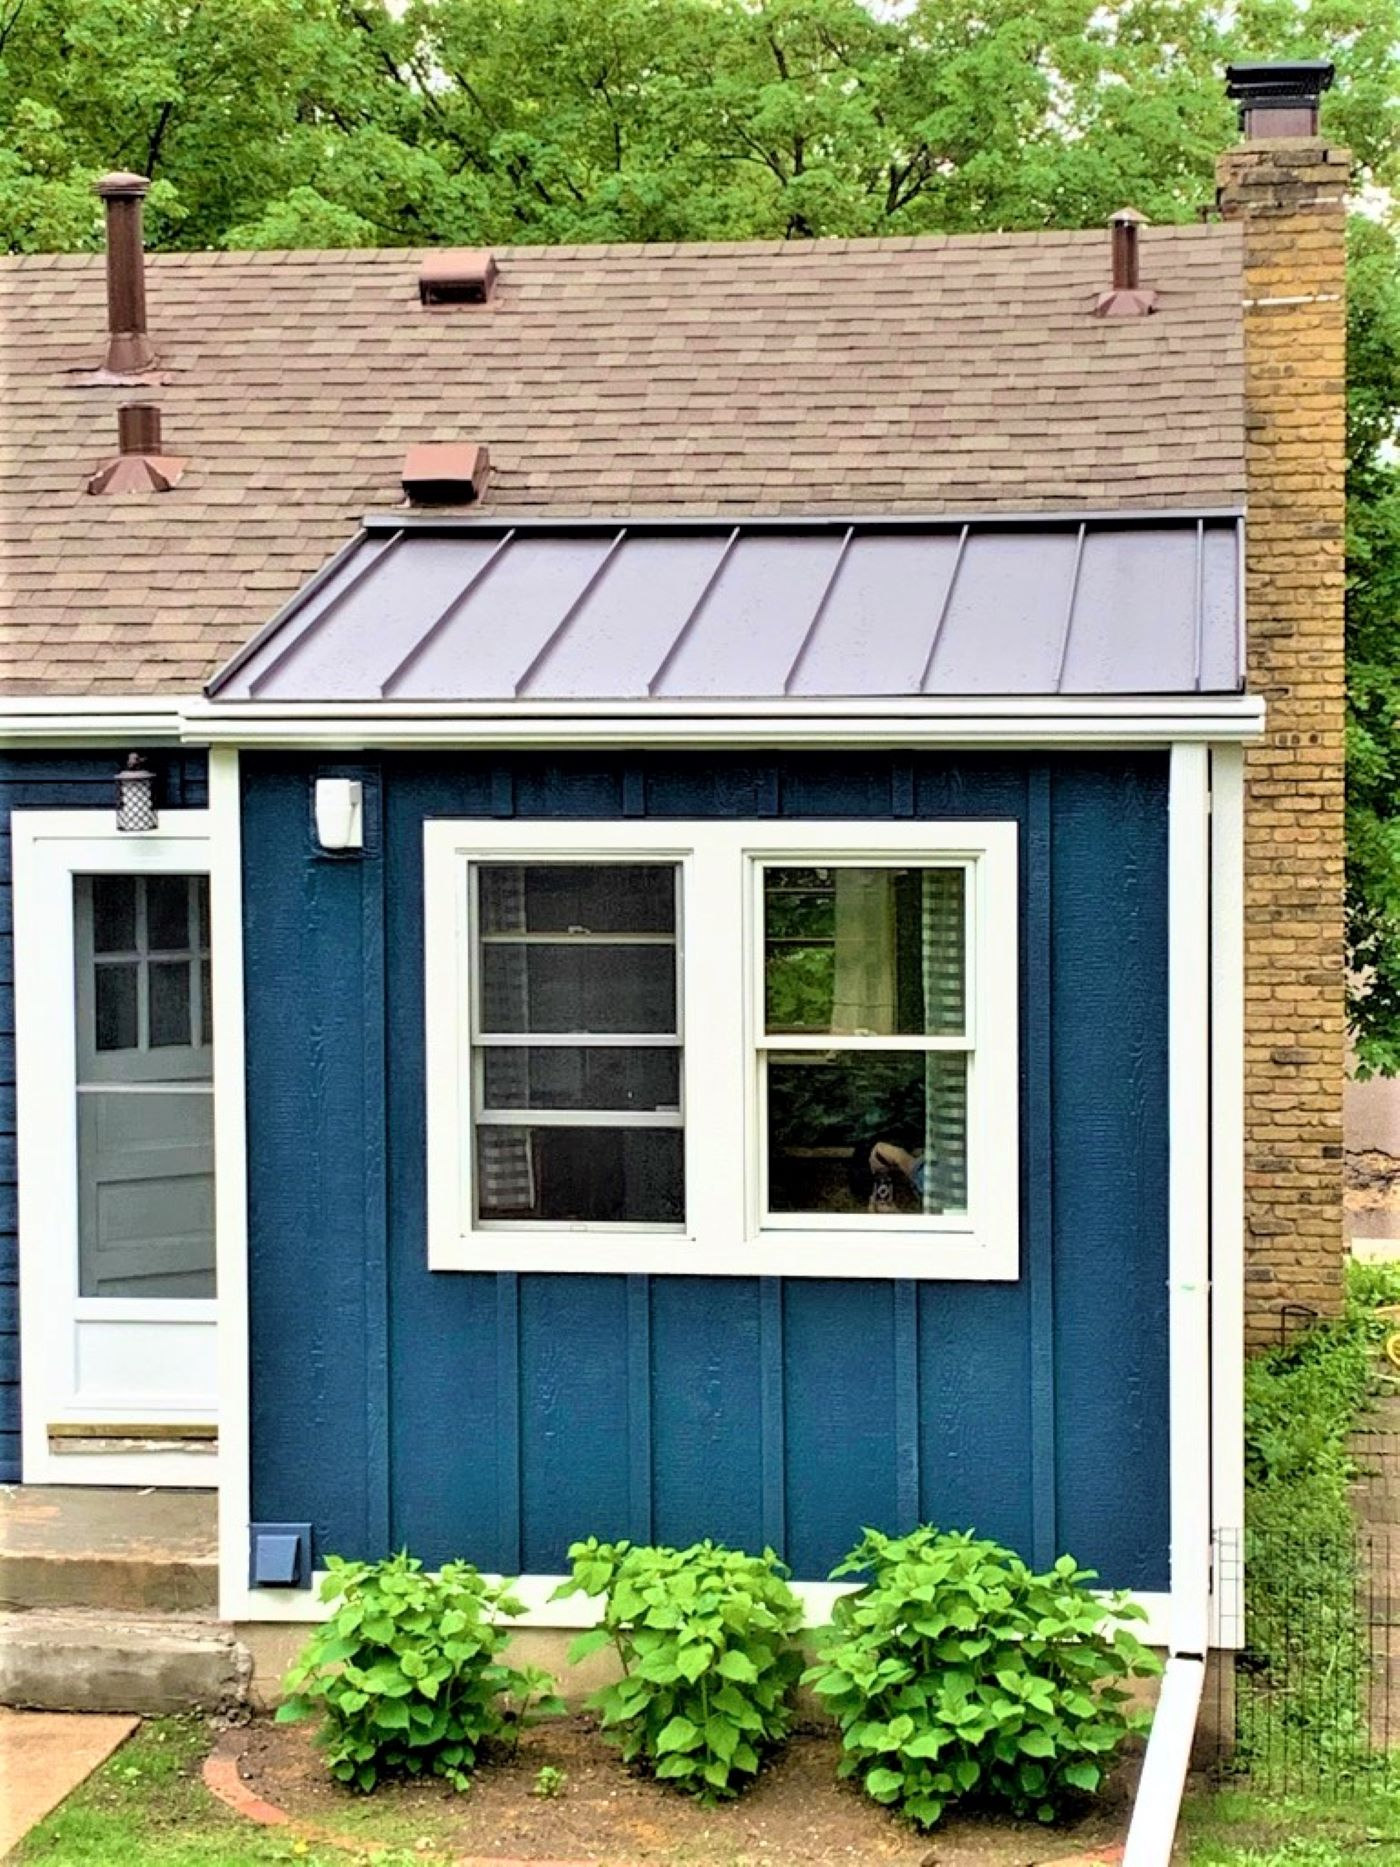 st louis park mn LP SmartSide & metal roof